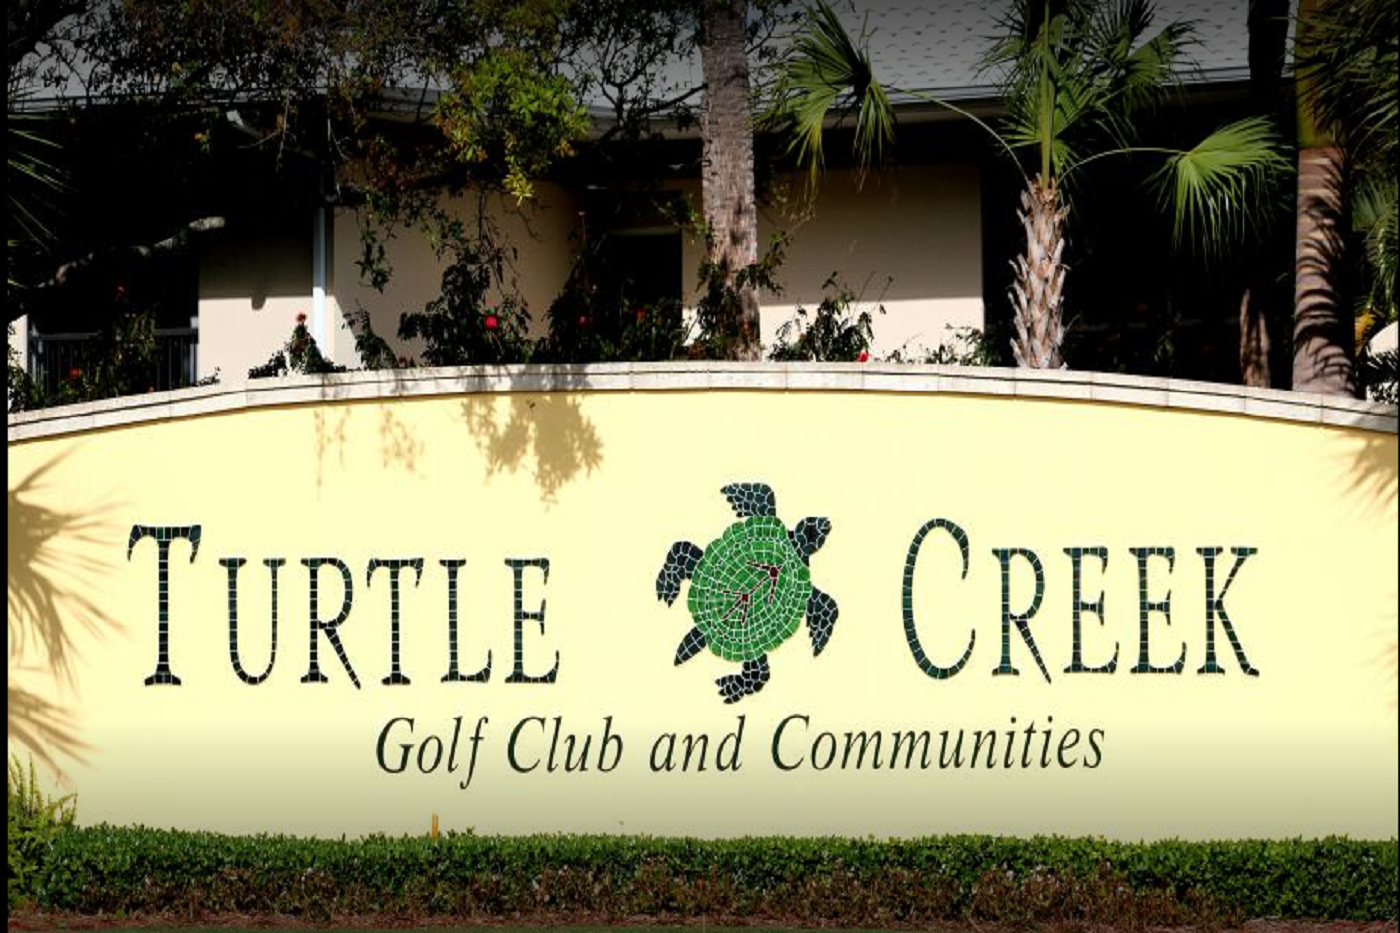 Turtle Creek Club, 2 SE Club Cir, Tequesta, FL 33469 Refilling Liquor Bottles